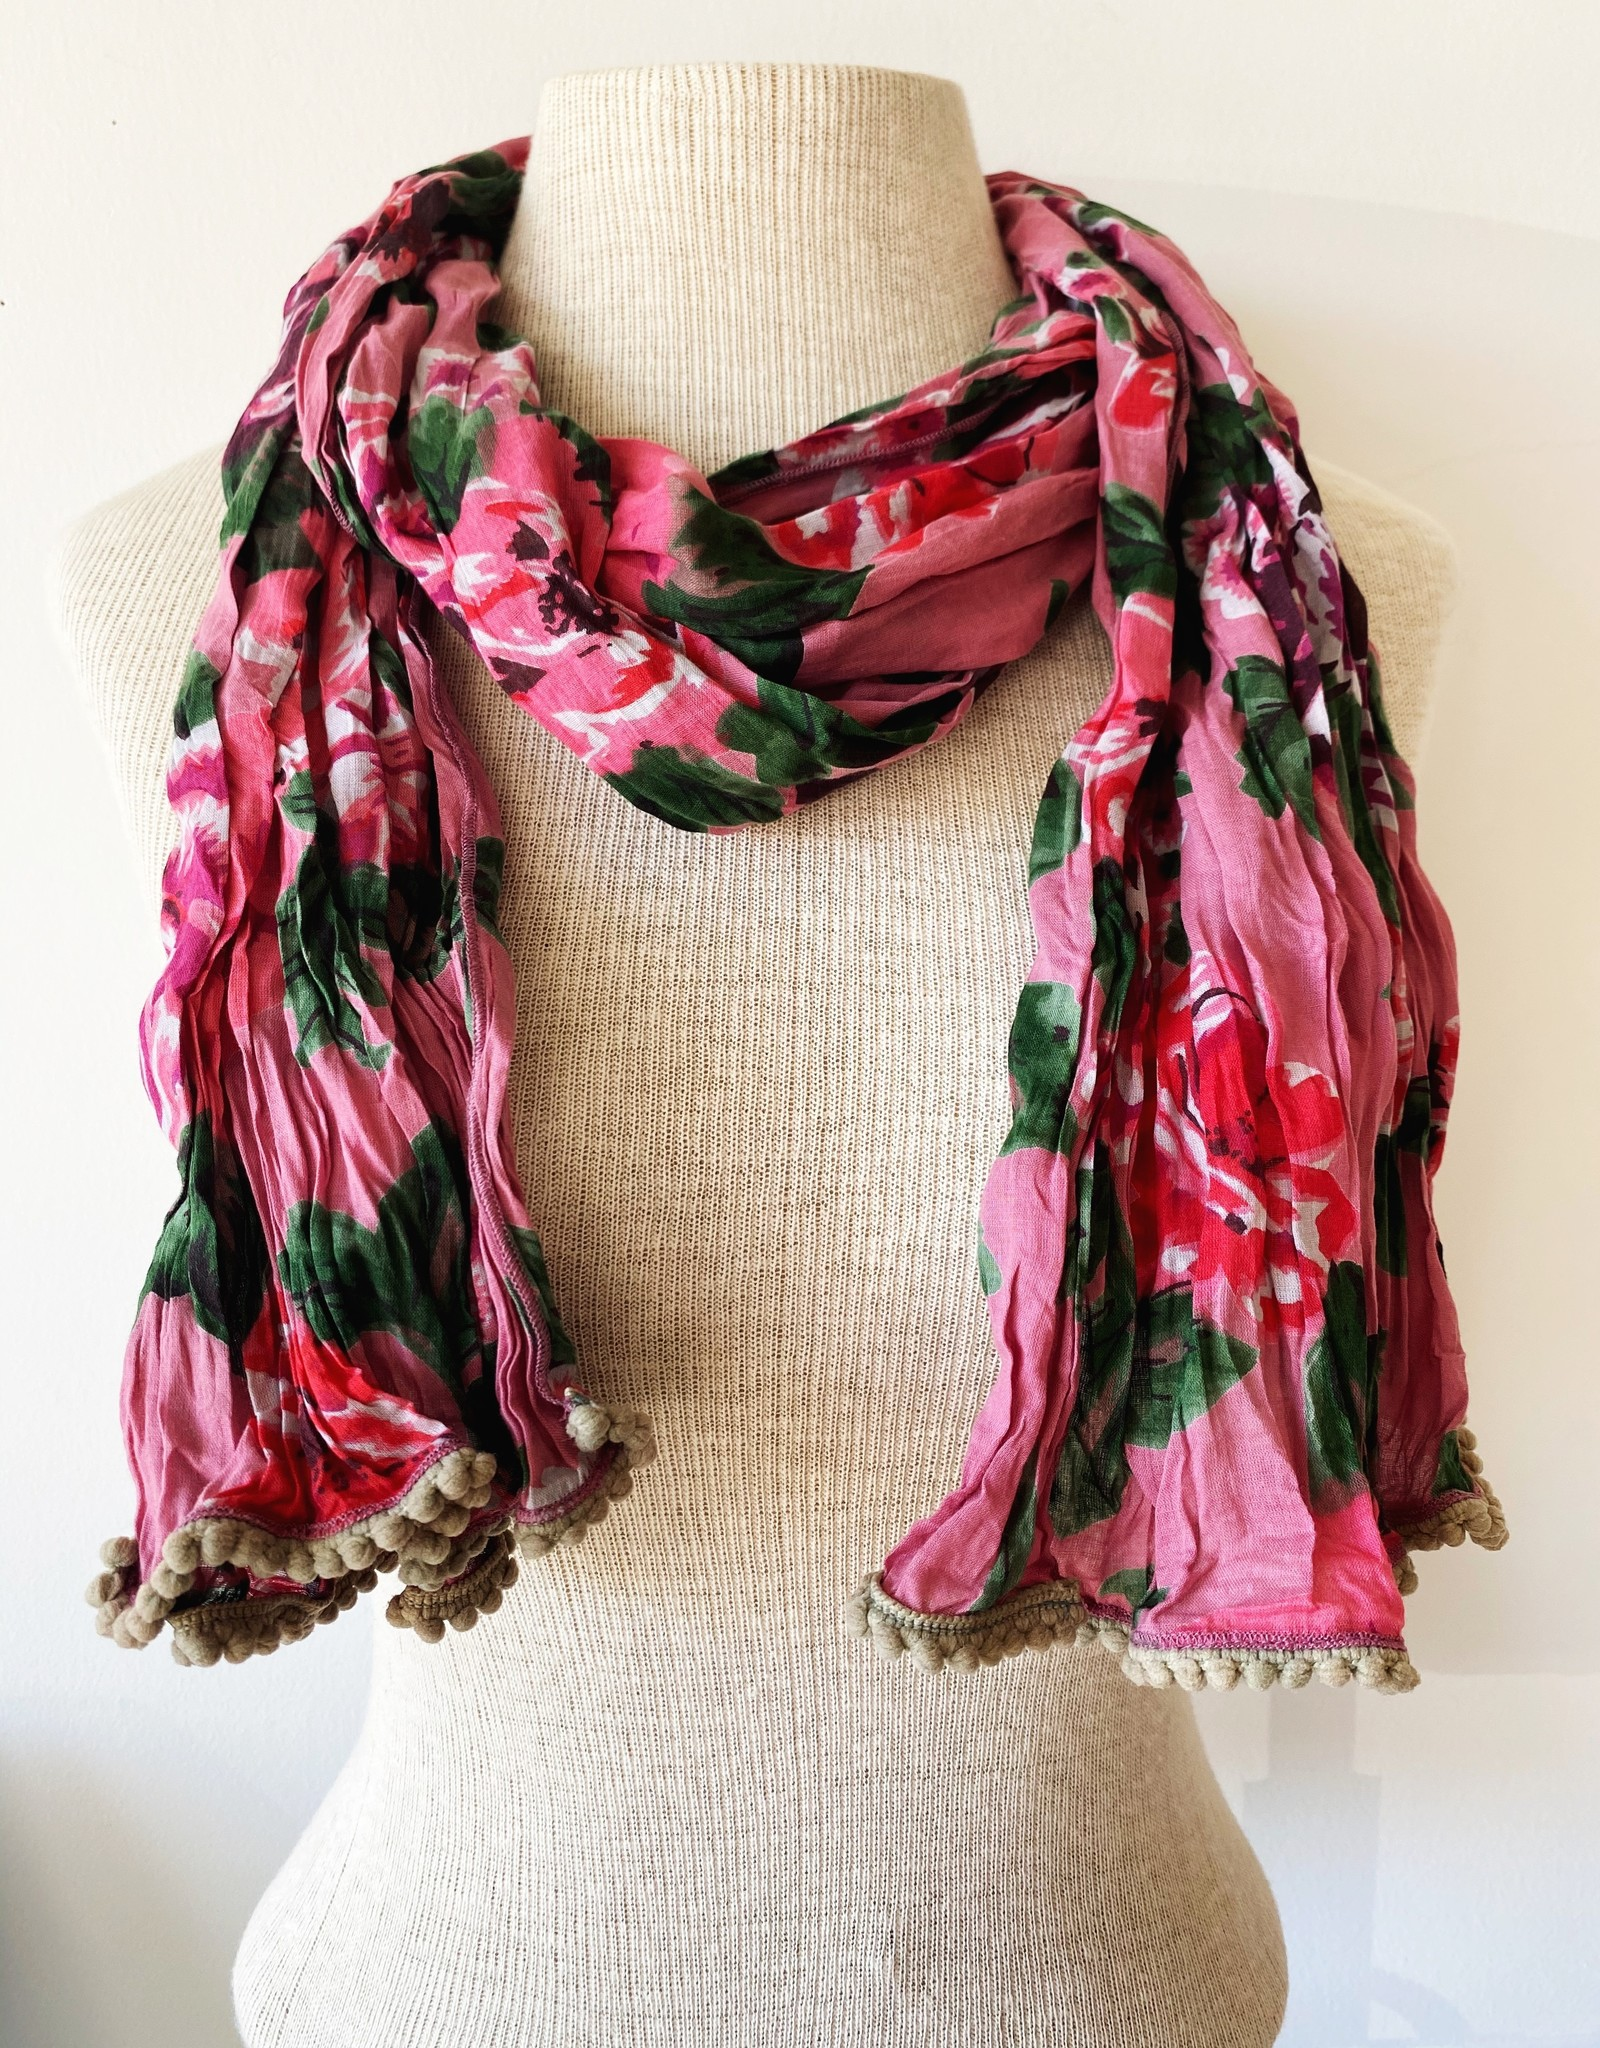 LITTLE JOURNEYS INCOEA LITTLE JOURNEYS TEA ROSE SCARF